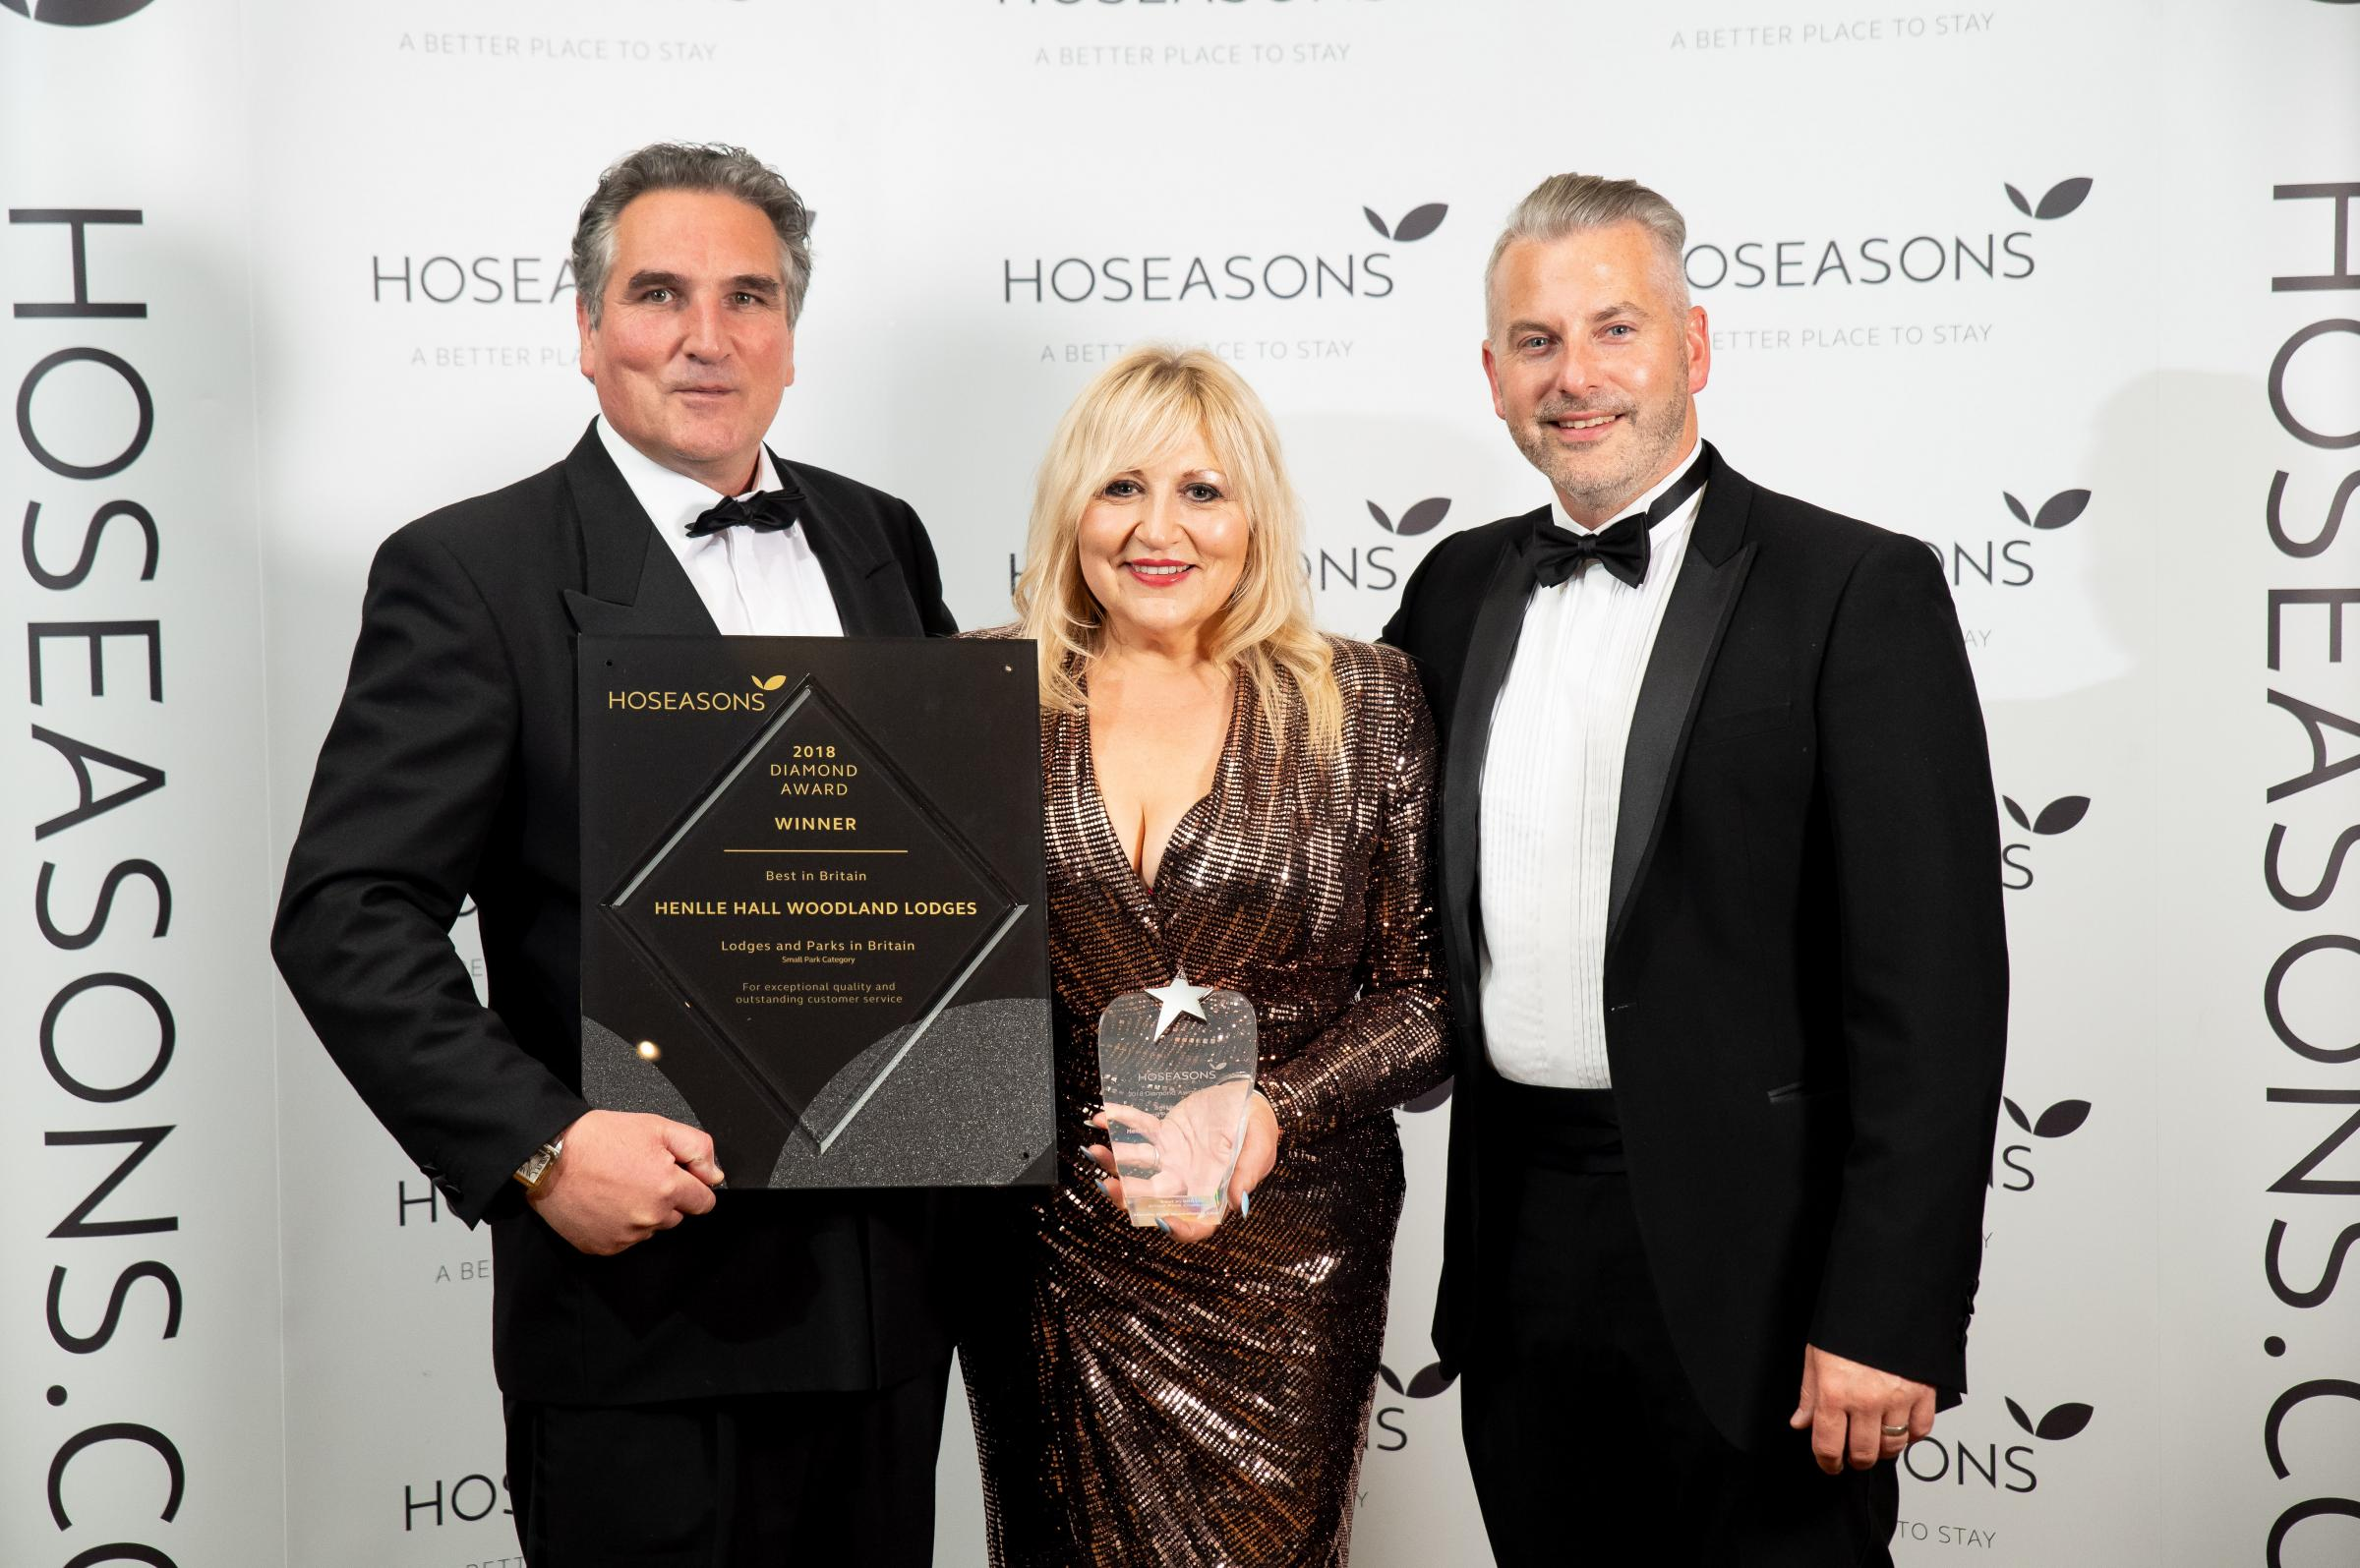 Cosmo Lloyd and Keeta Thomas, of Henlle Hall Woodland Lodges, receive their award from Hoseasons head of product, Scott Drew. Picture - Darren Cool